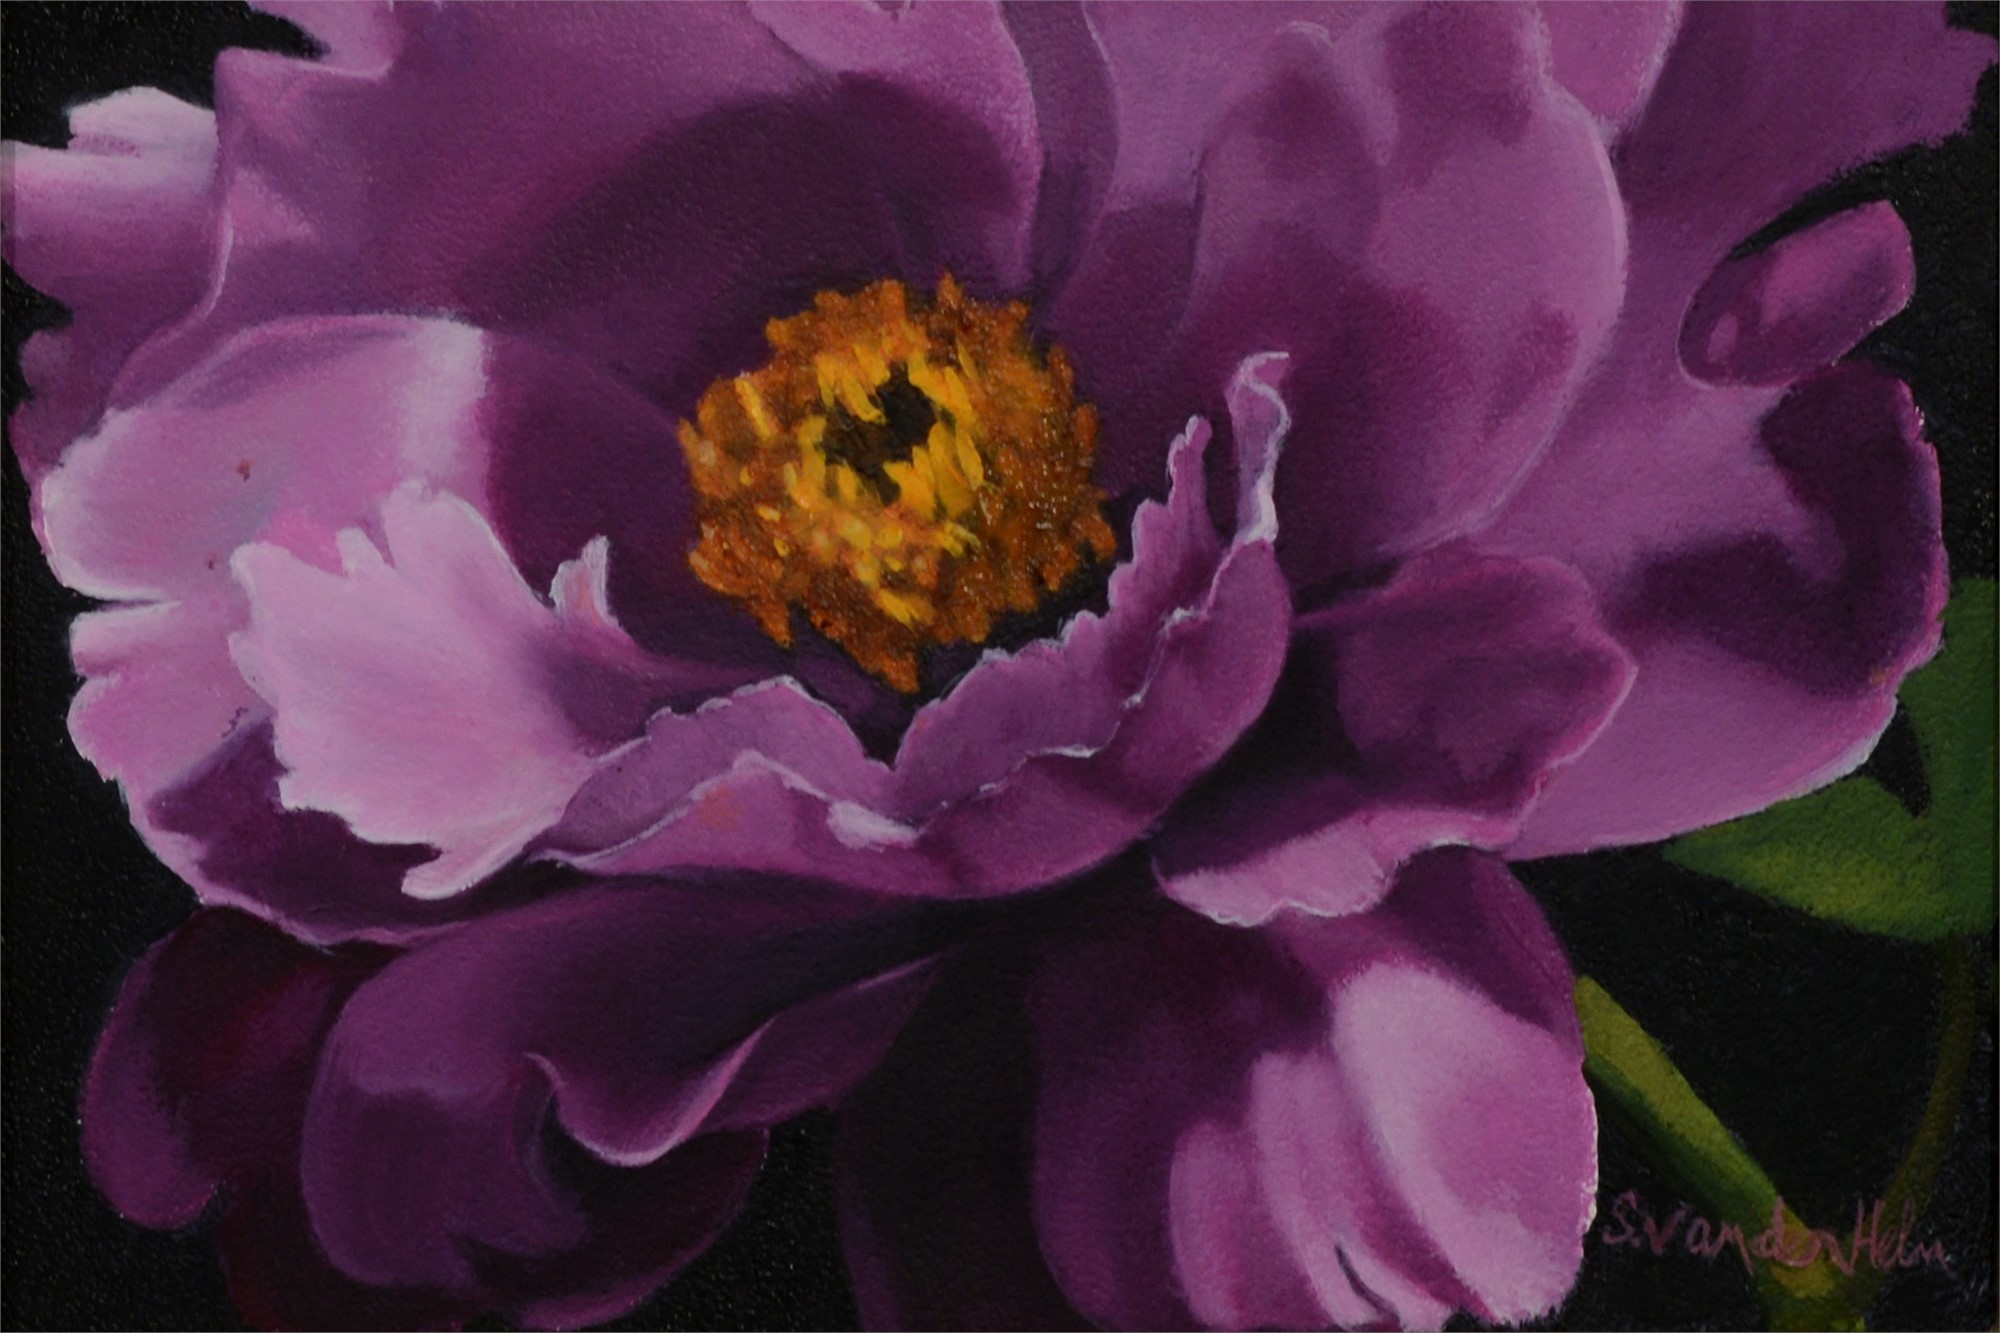 Purple Peony in Sunlight by Sarah van der Helm